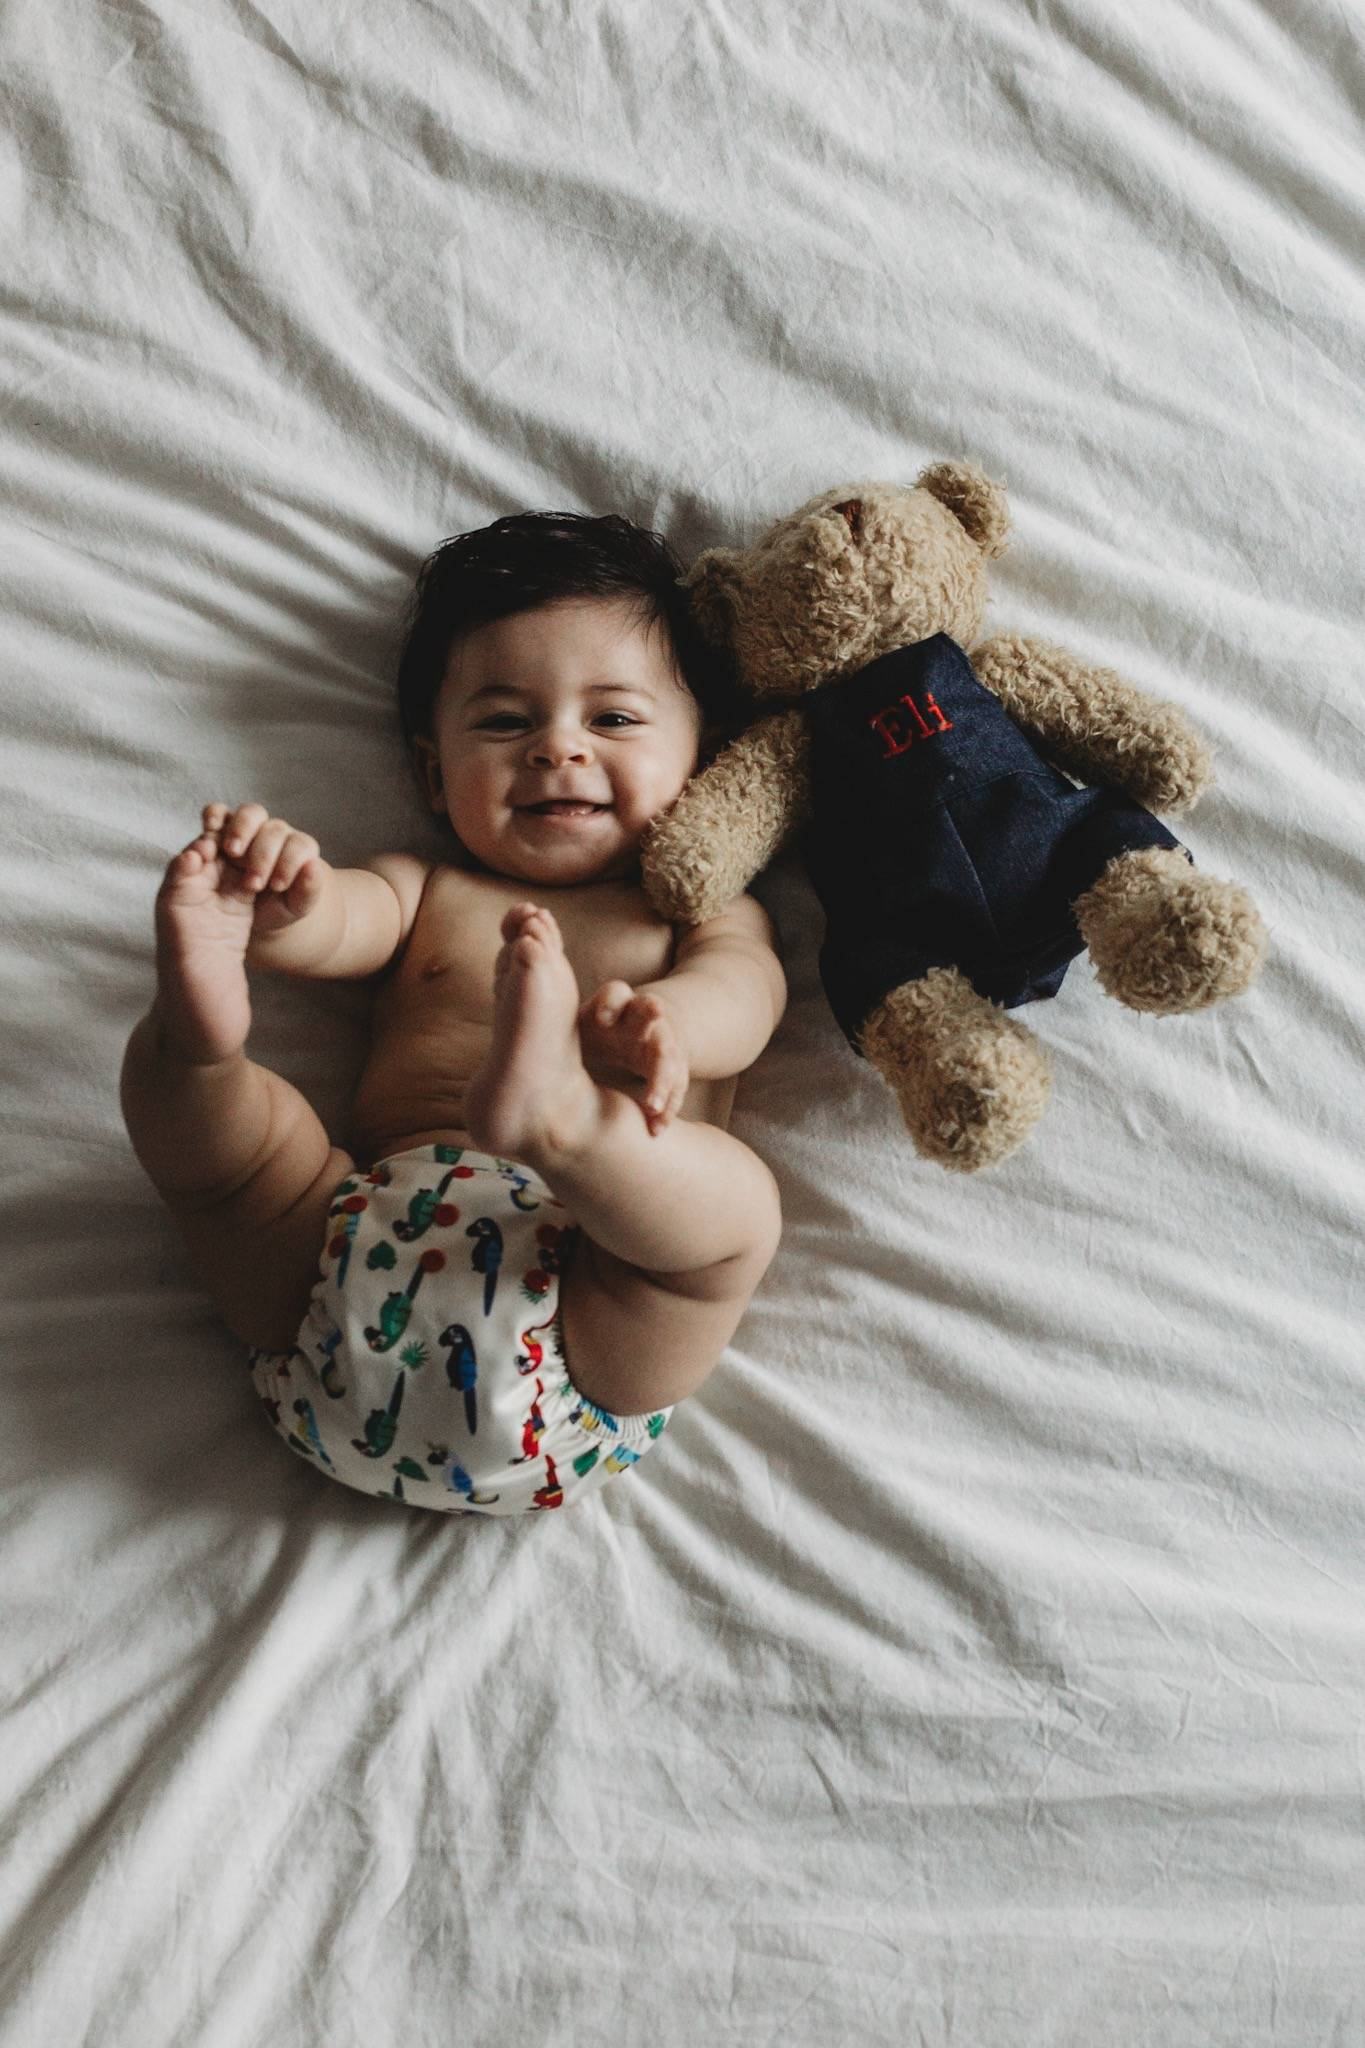 A photo of a baby with a stuffed bear next to him.